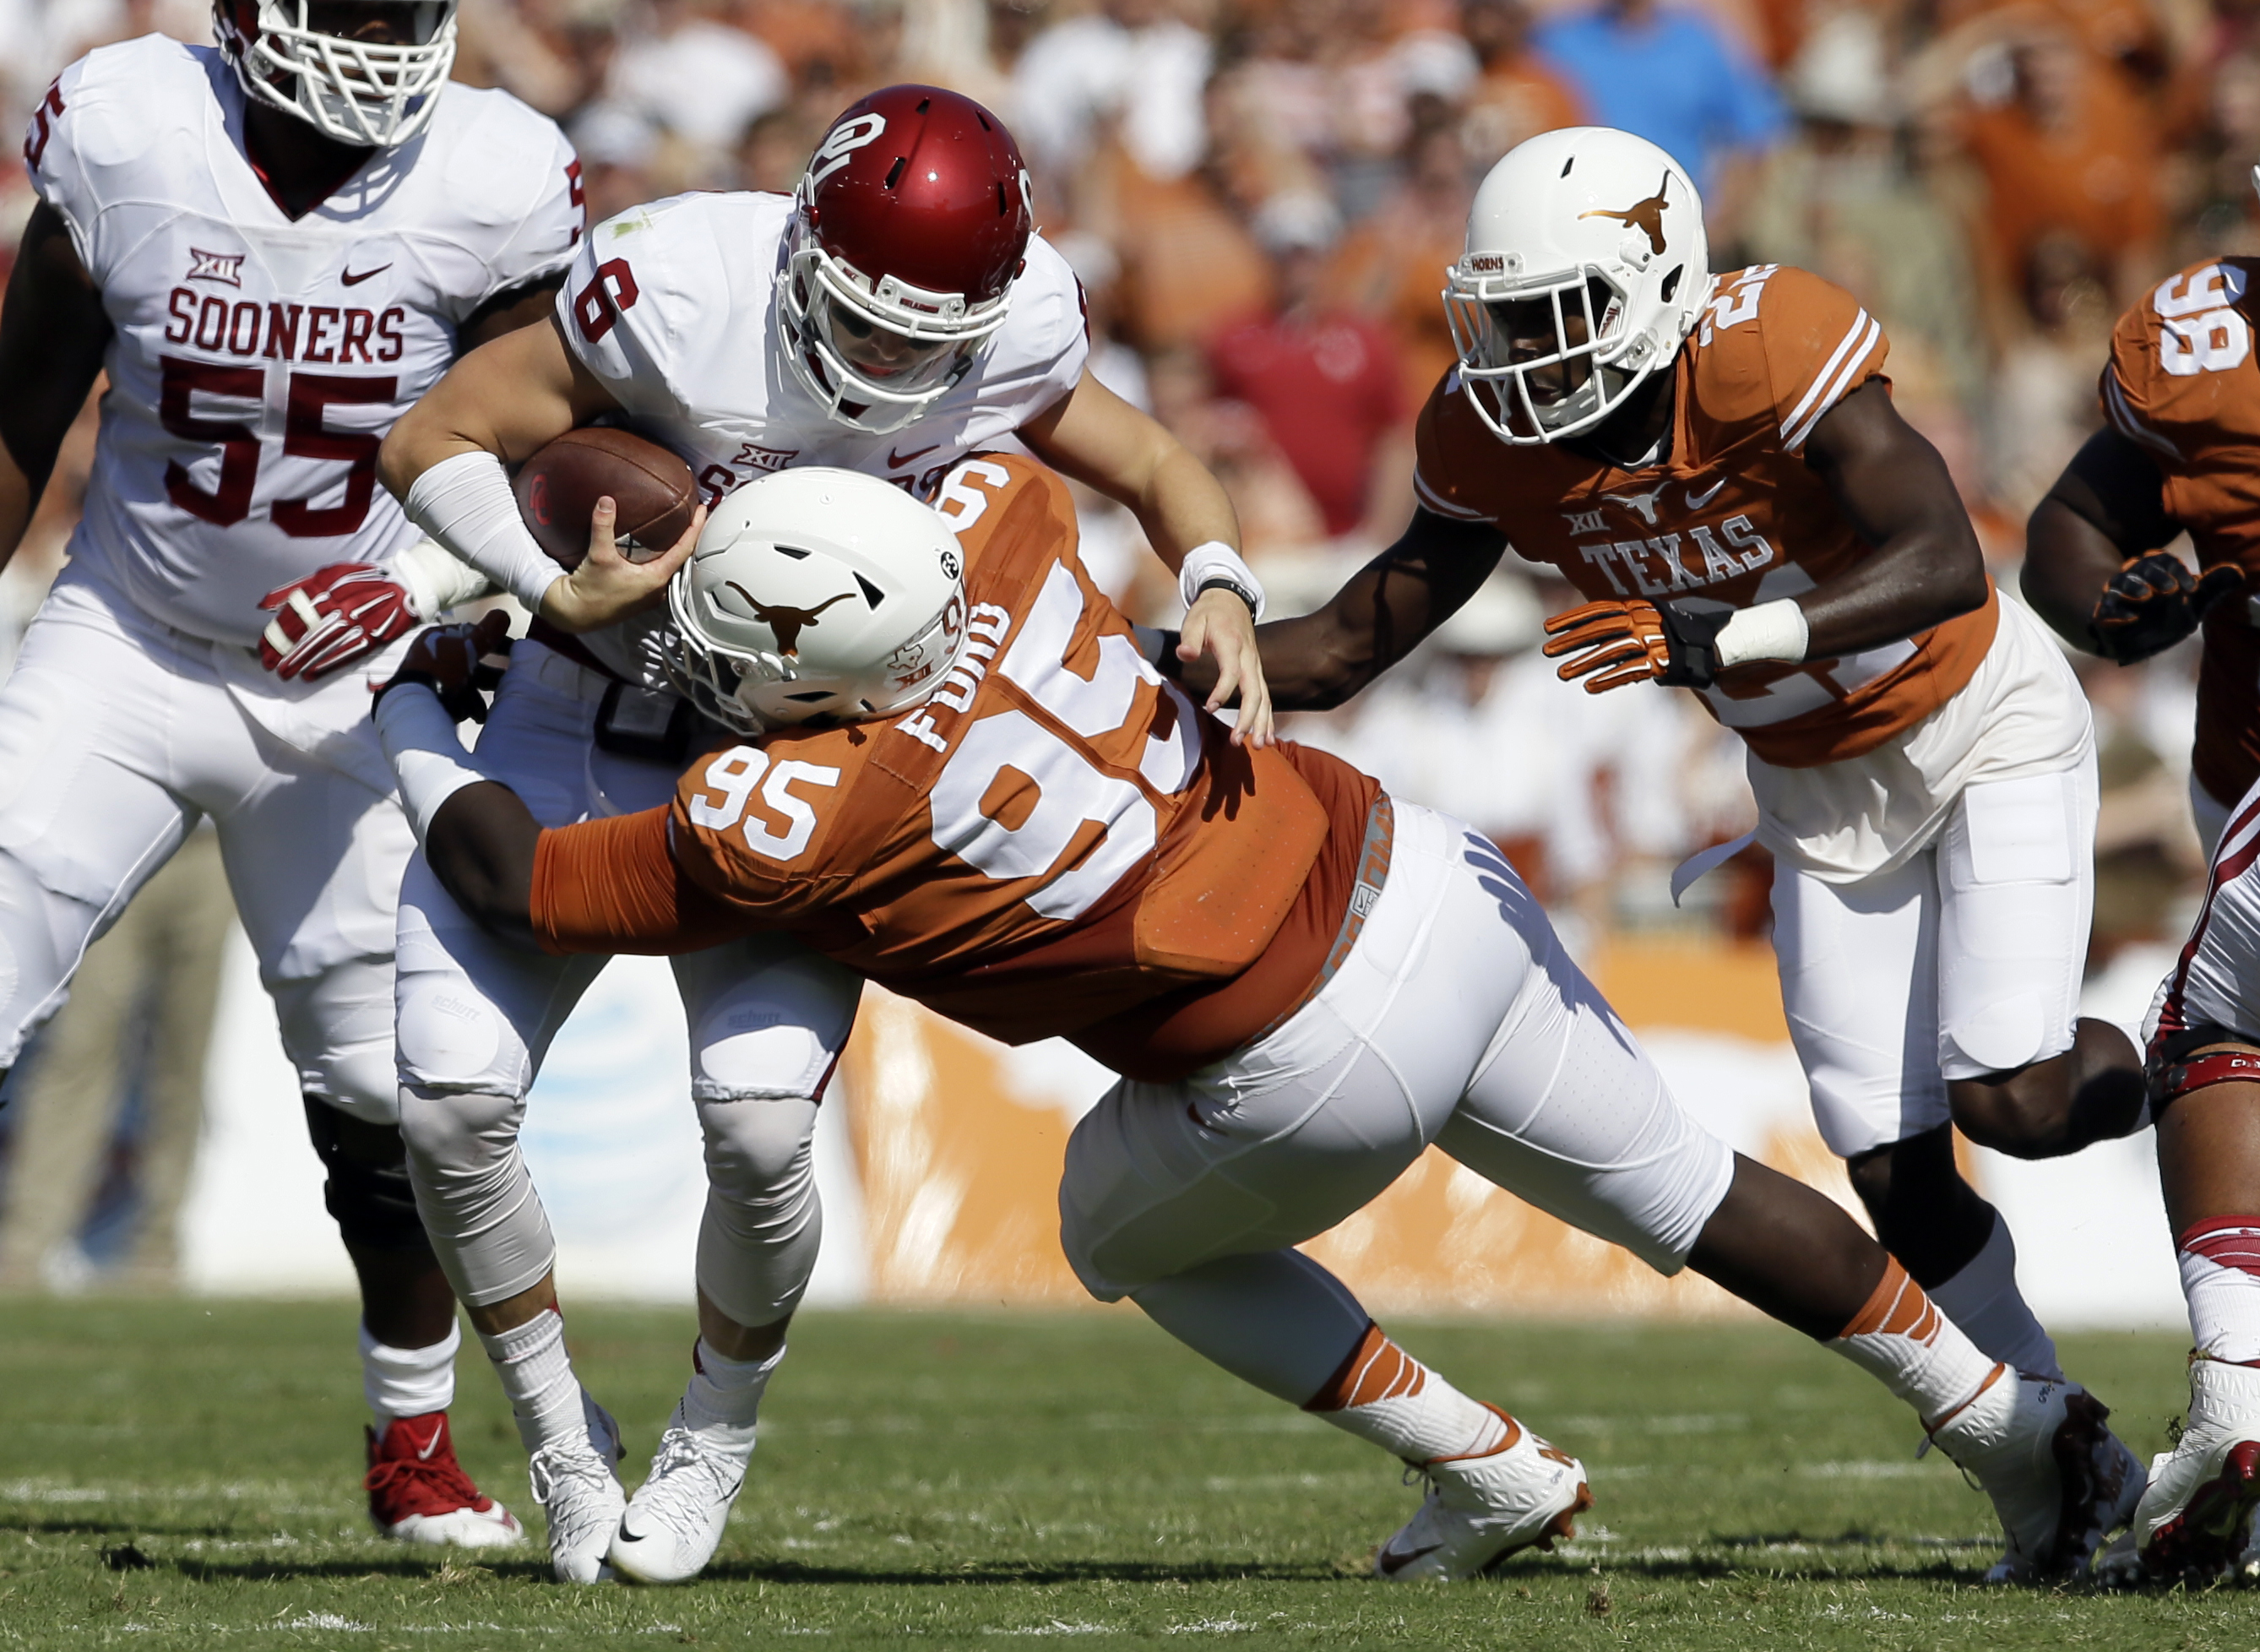 Texas defensive tackle Poona Ford (95) sacks Oklahoma quarterback Baker Mayfield (6) in the first half of an NCAA college football game Saturday, Oct. 10, 2015, in Dallas. (AP Photo/LM Otero)